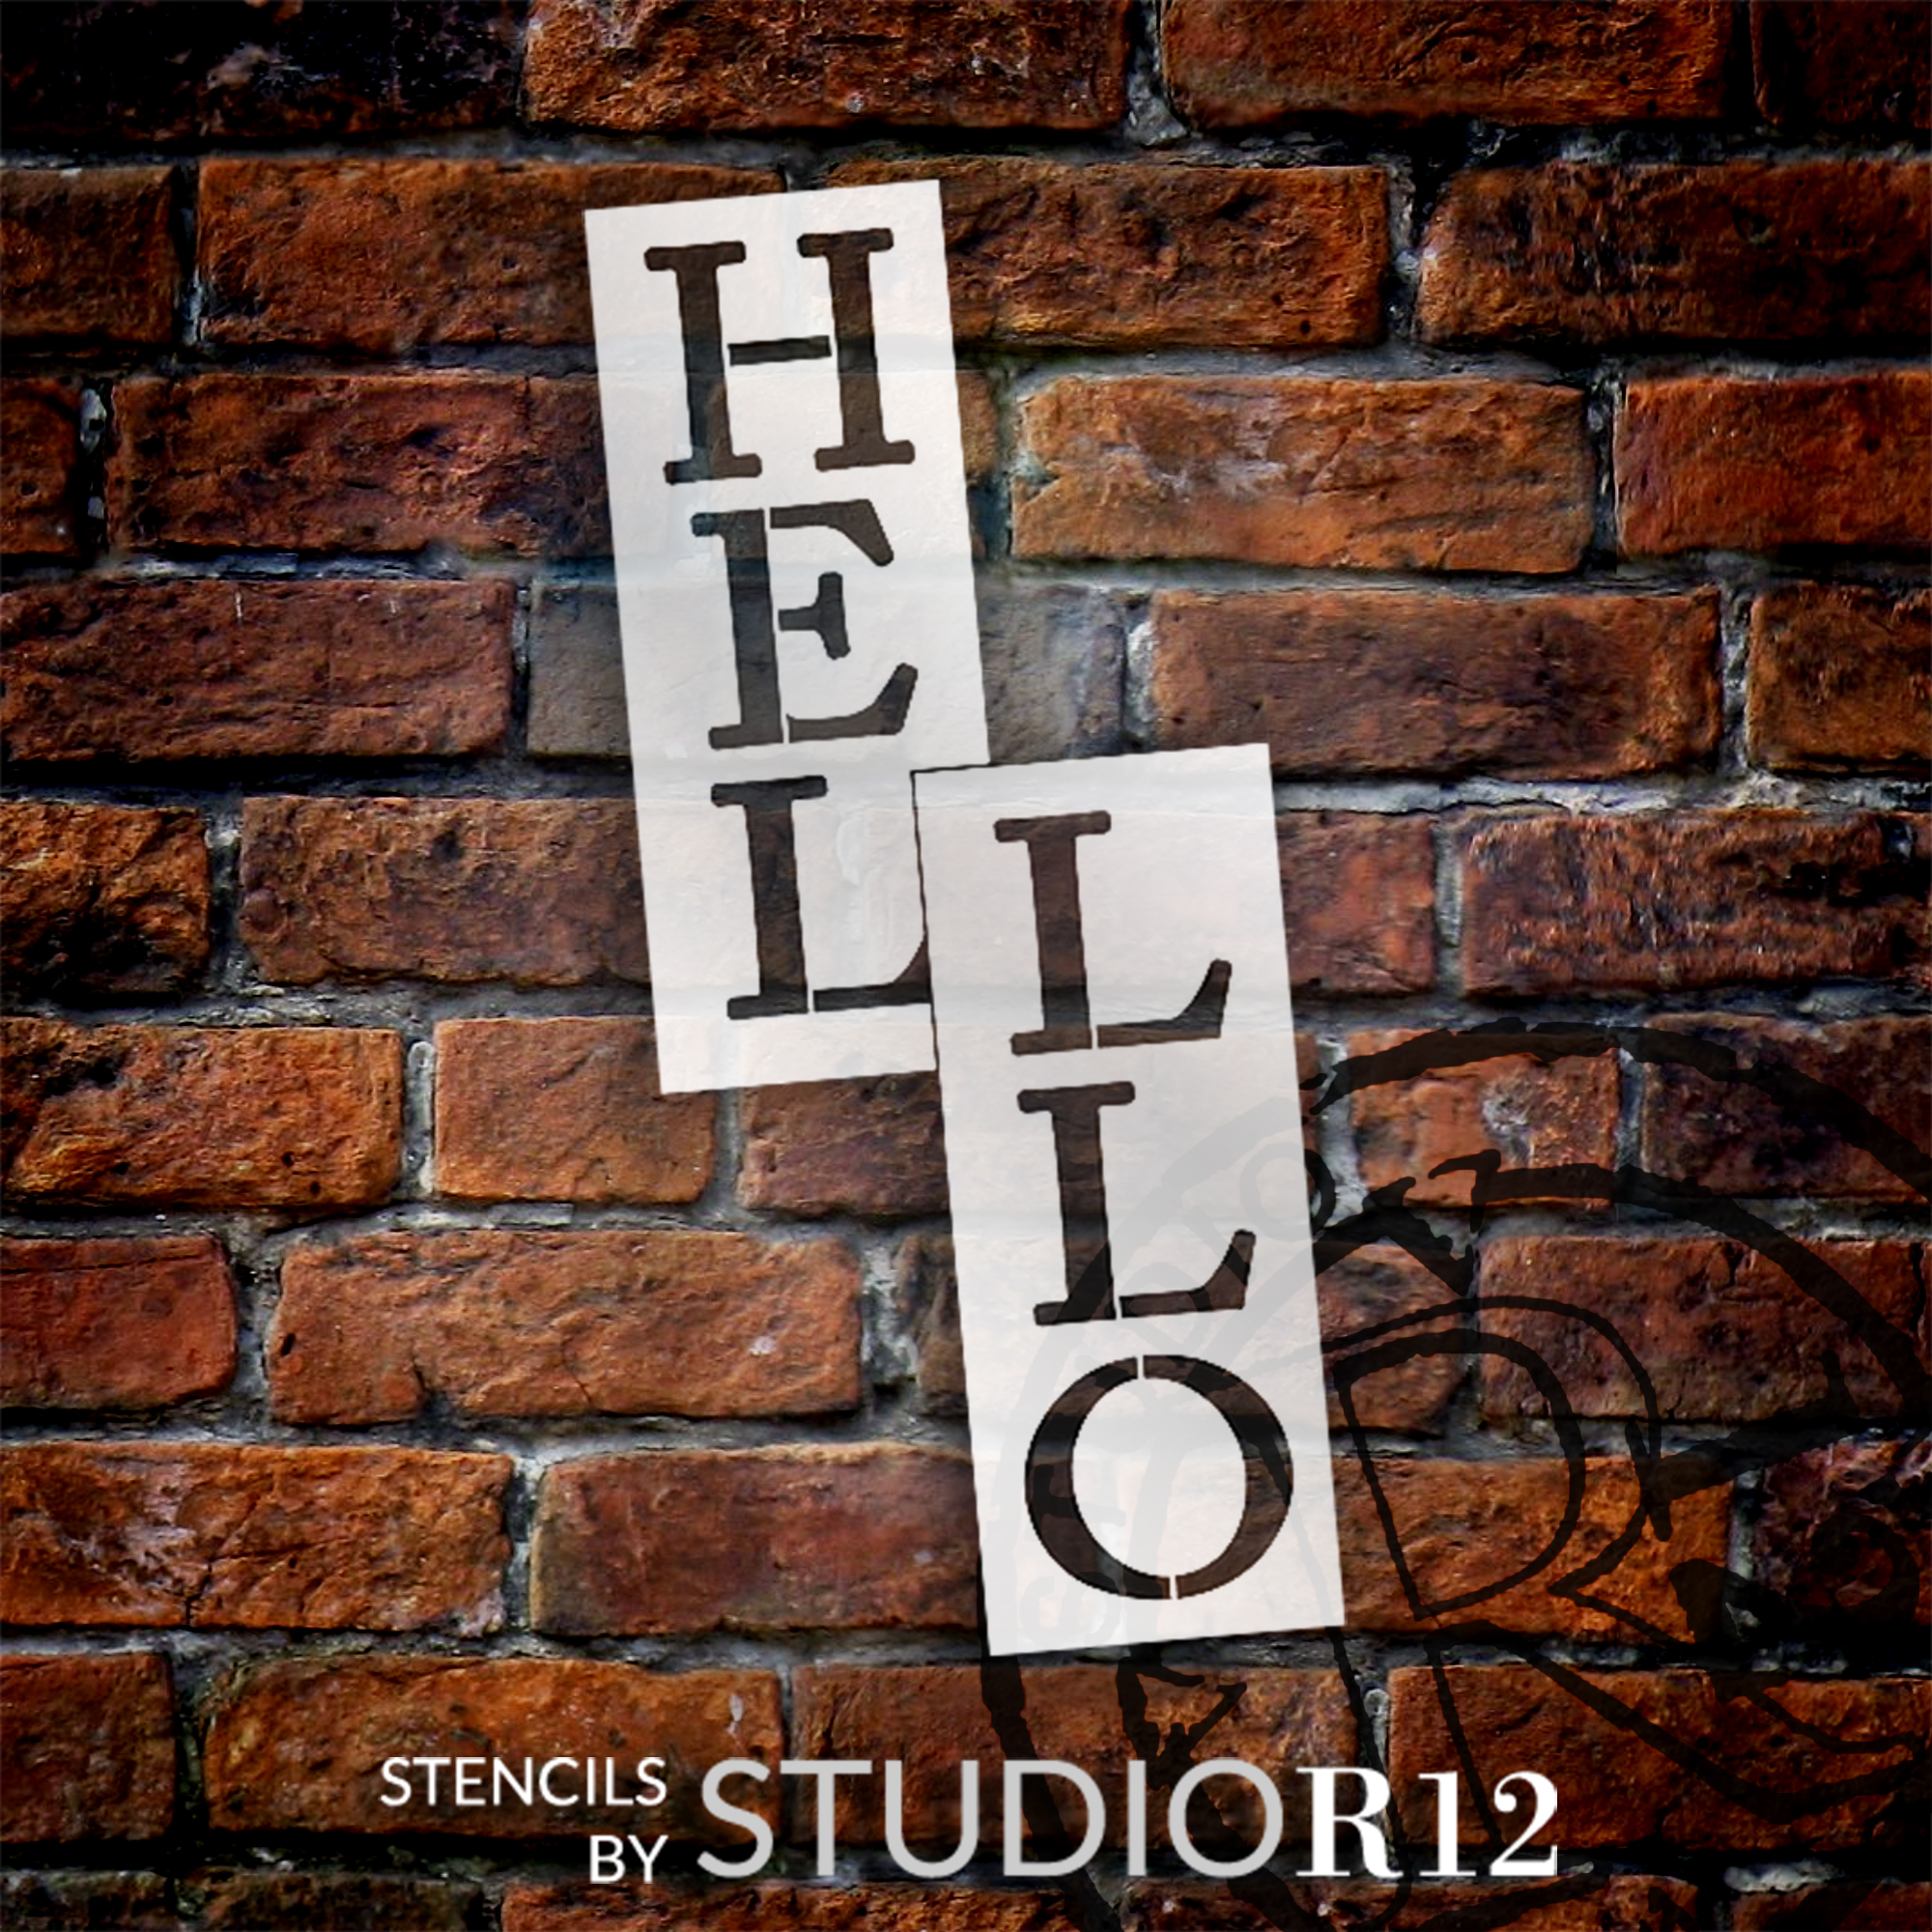 Hello Tall Porch Stencil by StudioR12 | 2 Piece | DIY Large Vertical Outdoor Welcome Home Decor | Front Door or Entryway | Craft & Paint Wood Leaner Signs | Reusable Mylar Template | Size 4ft